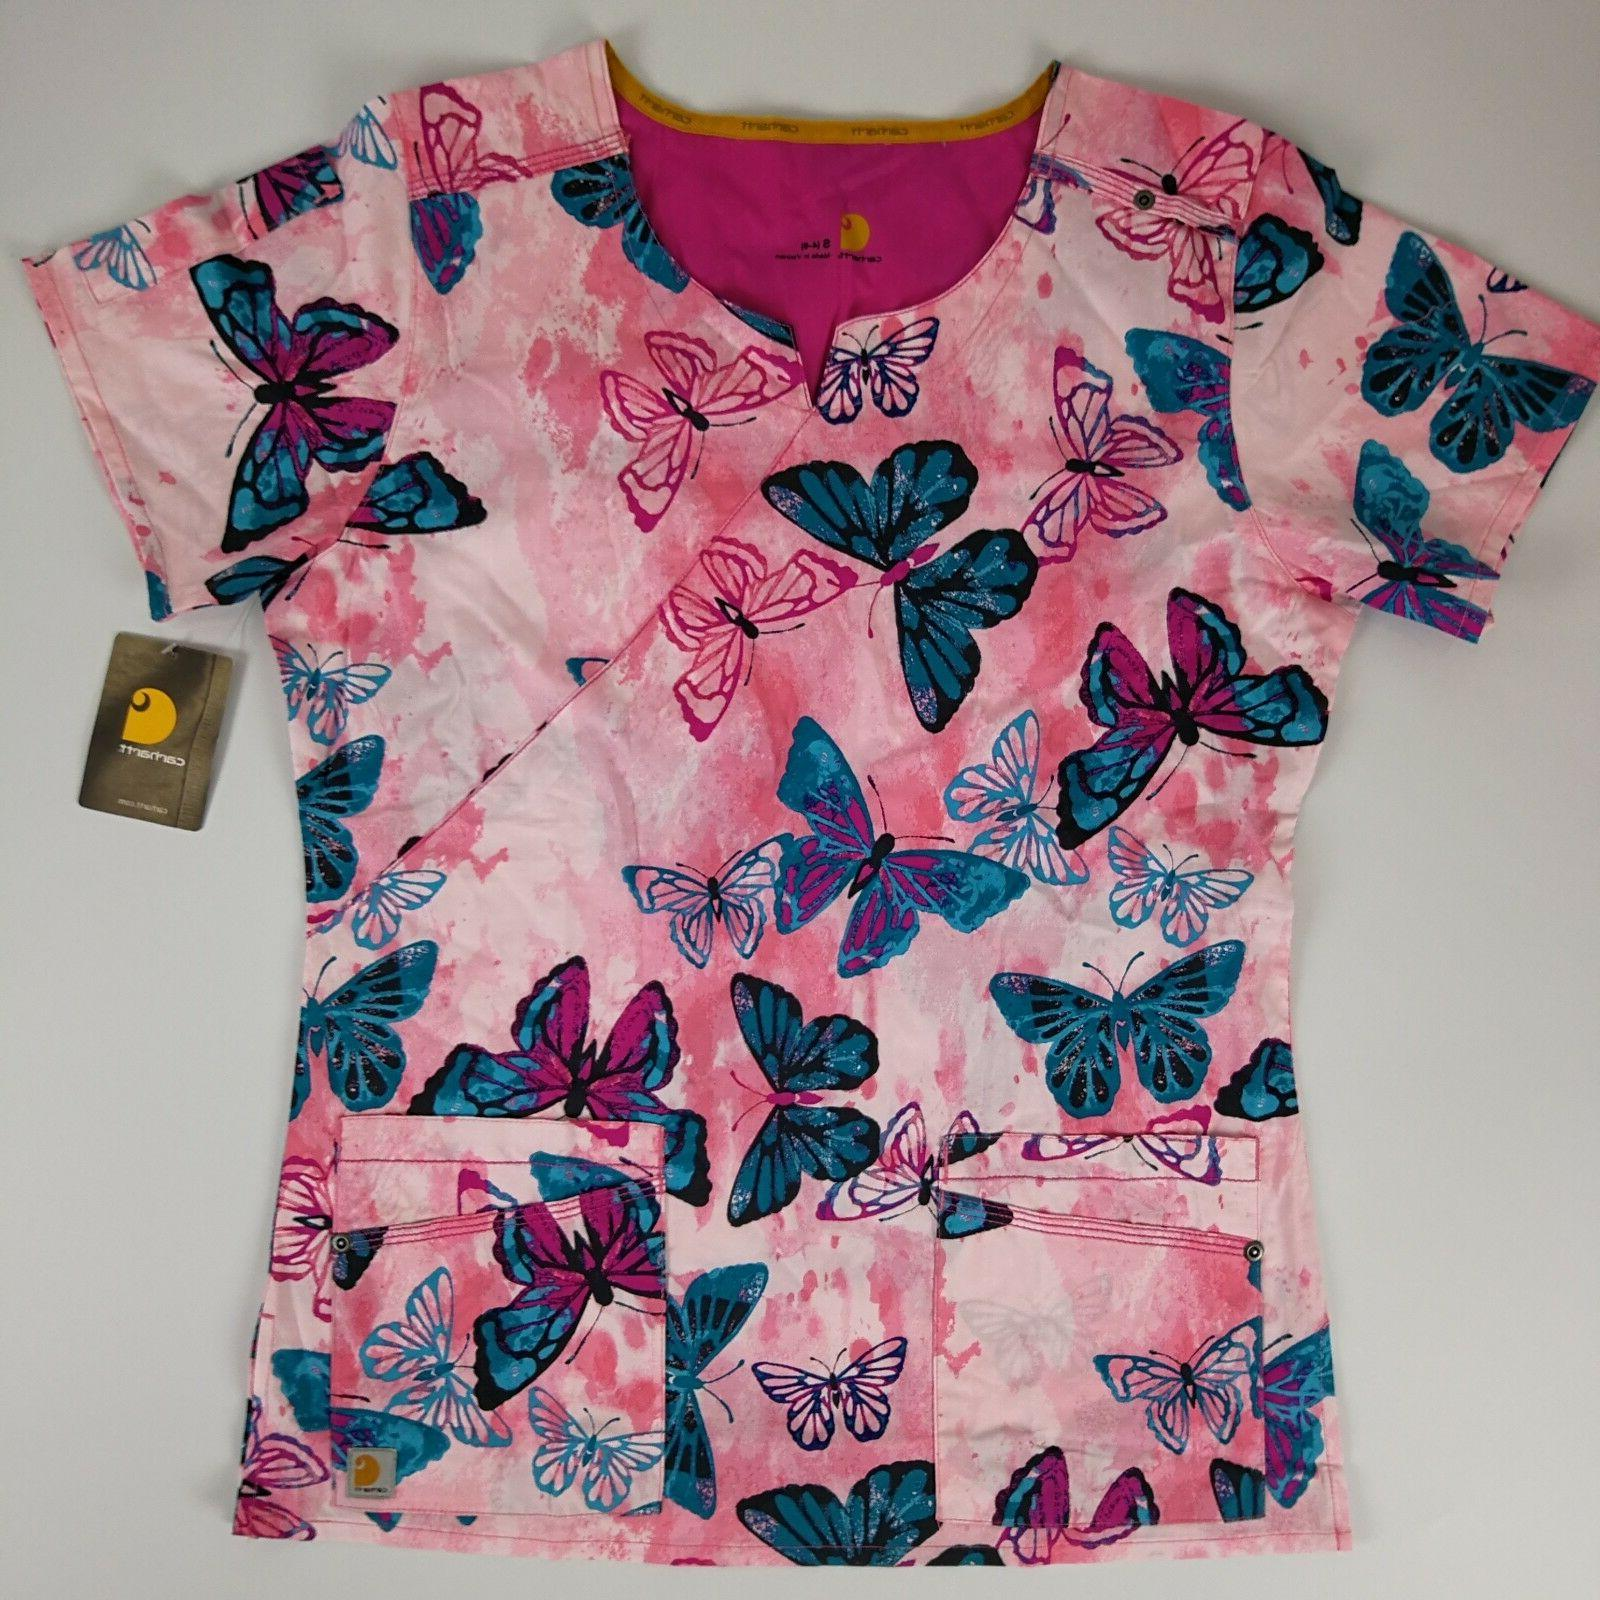 Carhartt Scrub Top Women's Small Pink Butterfly Stretch Nurs